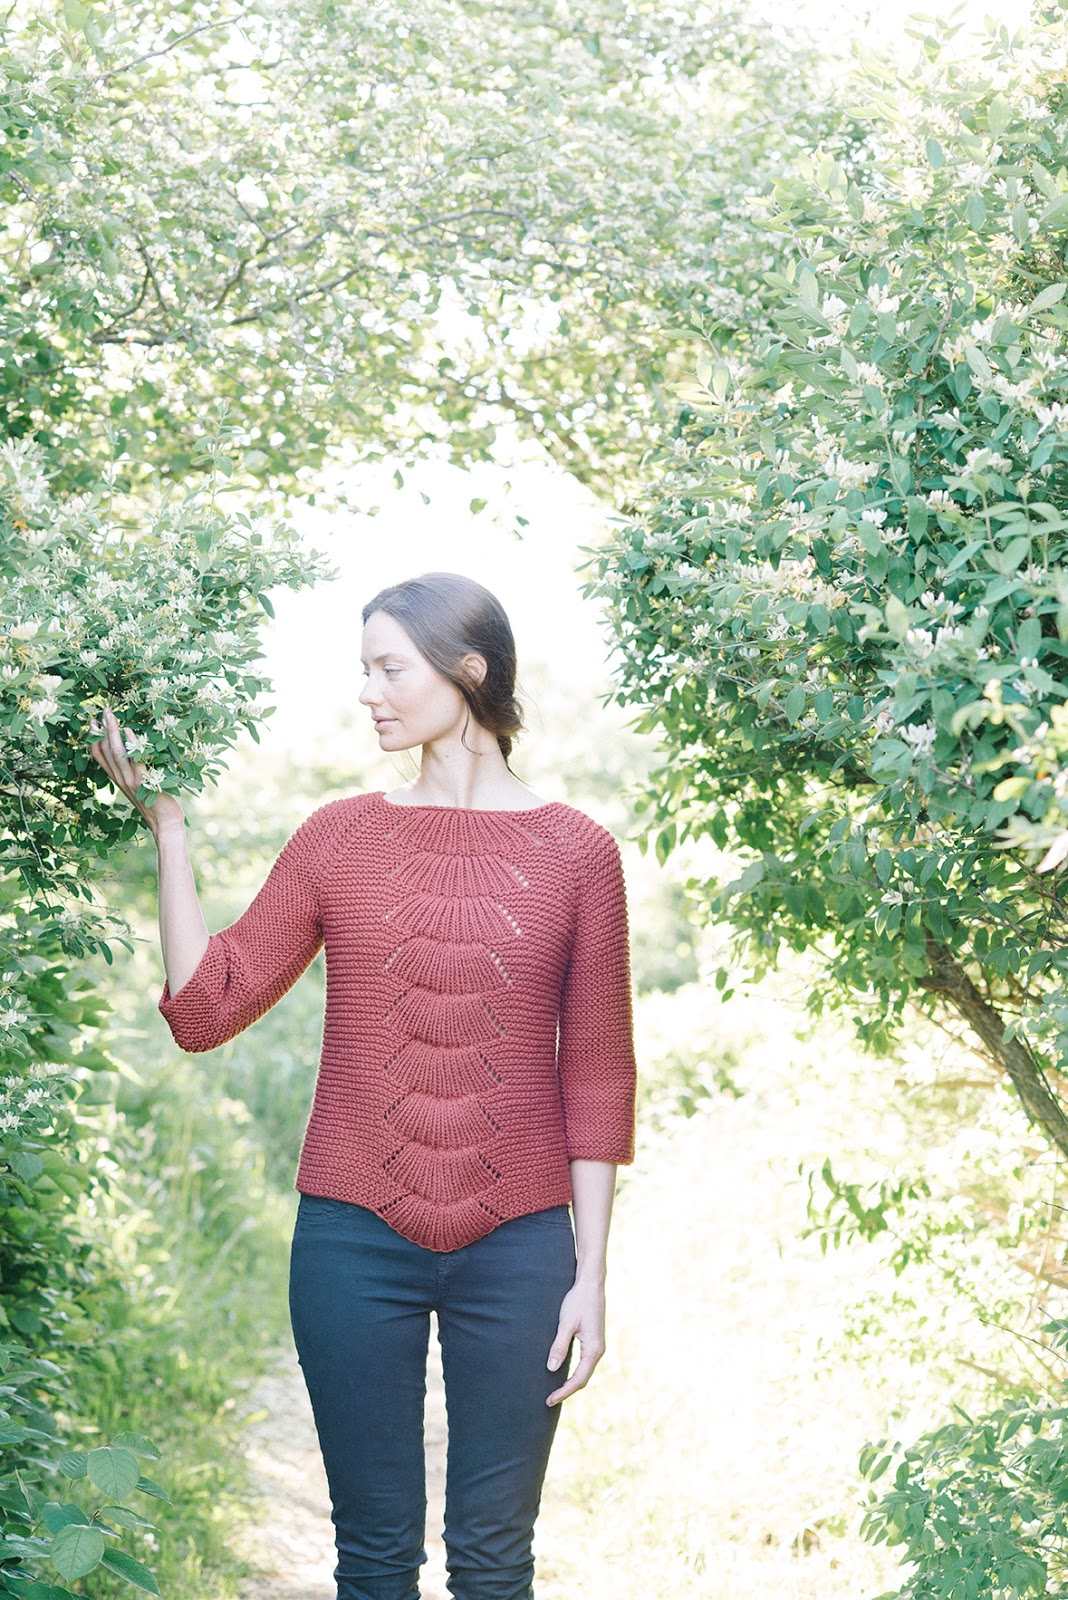 ANTHOLOGY 1 by Carrie Bostick Hoge Giveaway on VeryShannon.com #knitting